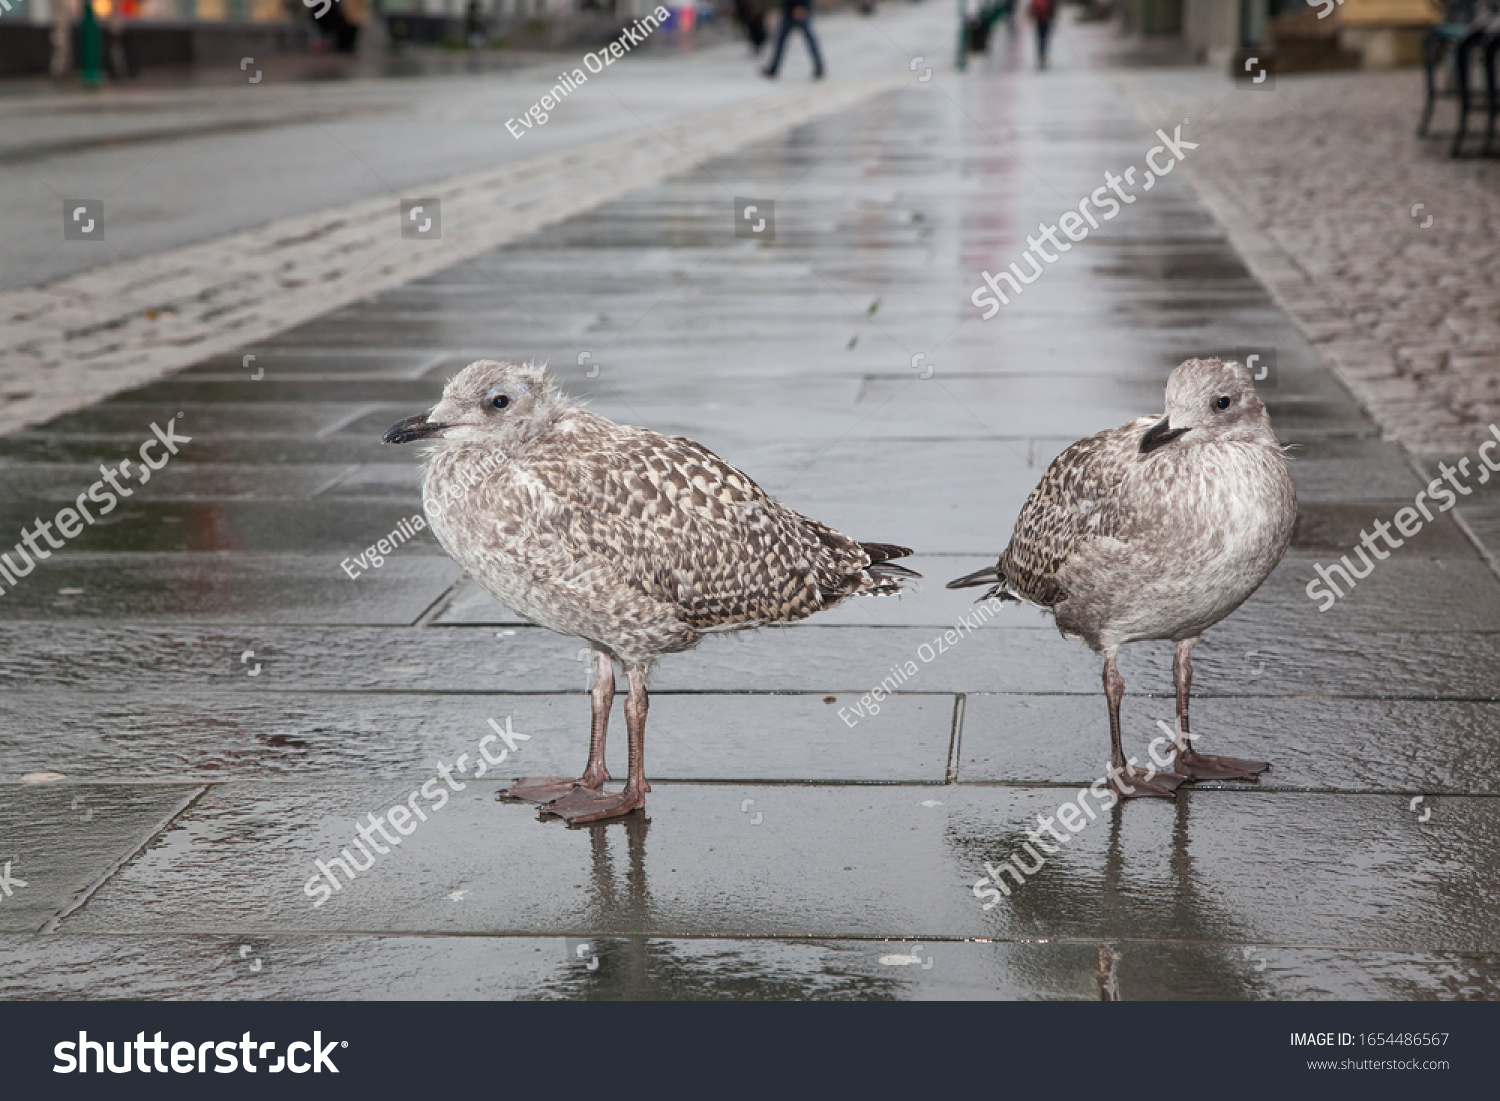 two great skuas in the city Tromso in Norway. The birds stand on the sidewalk.  Arctic wildlife fauna concept